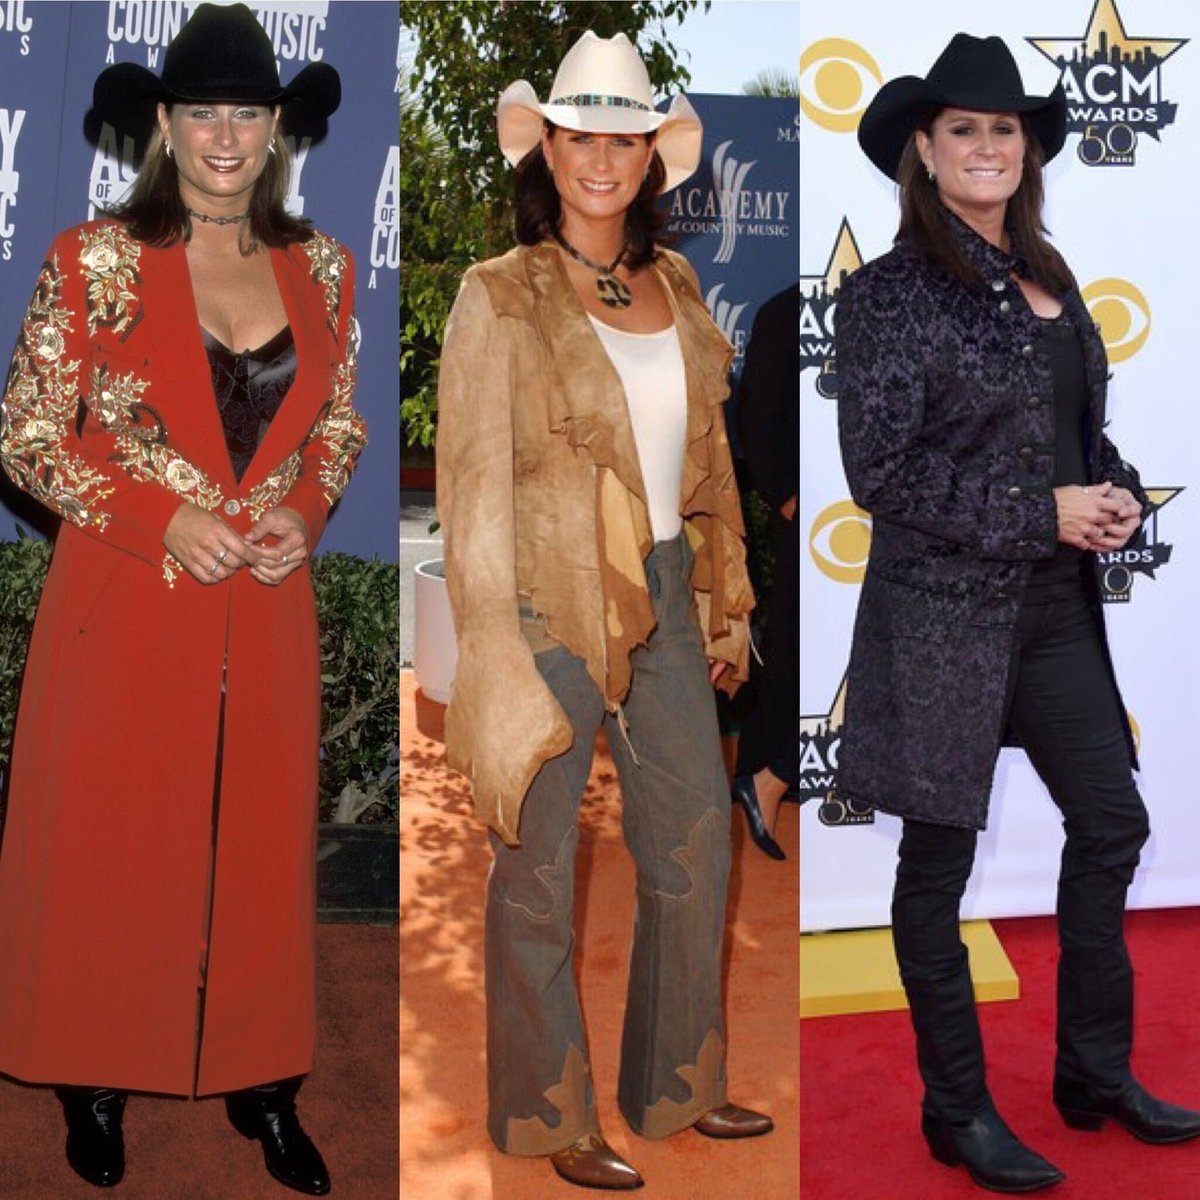 Congratulations to the @ACMawards for a great show last night! Had me thinking about memories from past #ACMawards. Which red carpet look was your favorite? #TBT https://t.co/a86FAiVZ7O